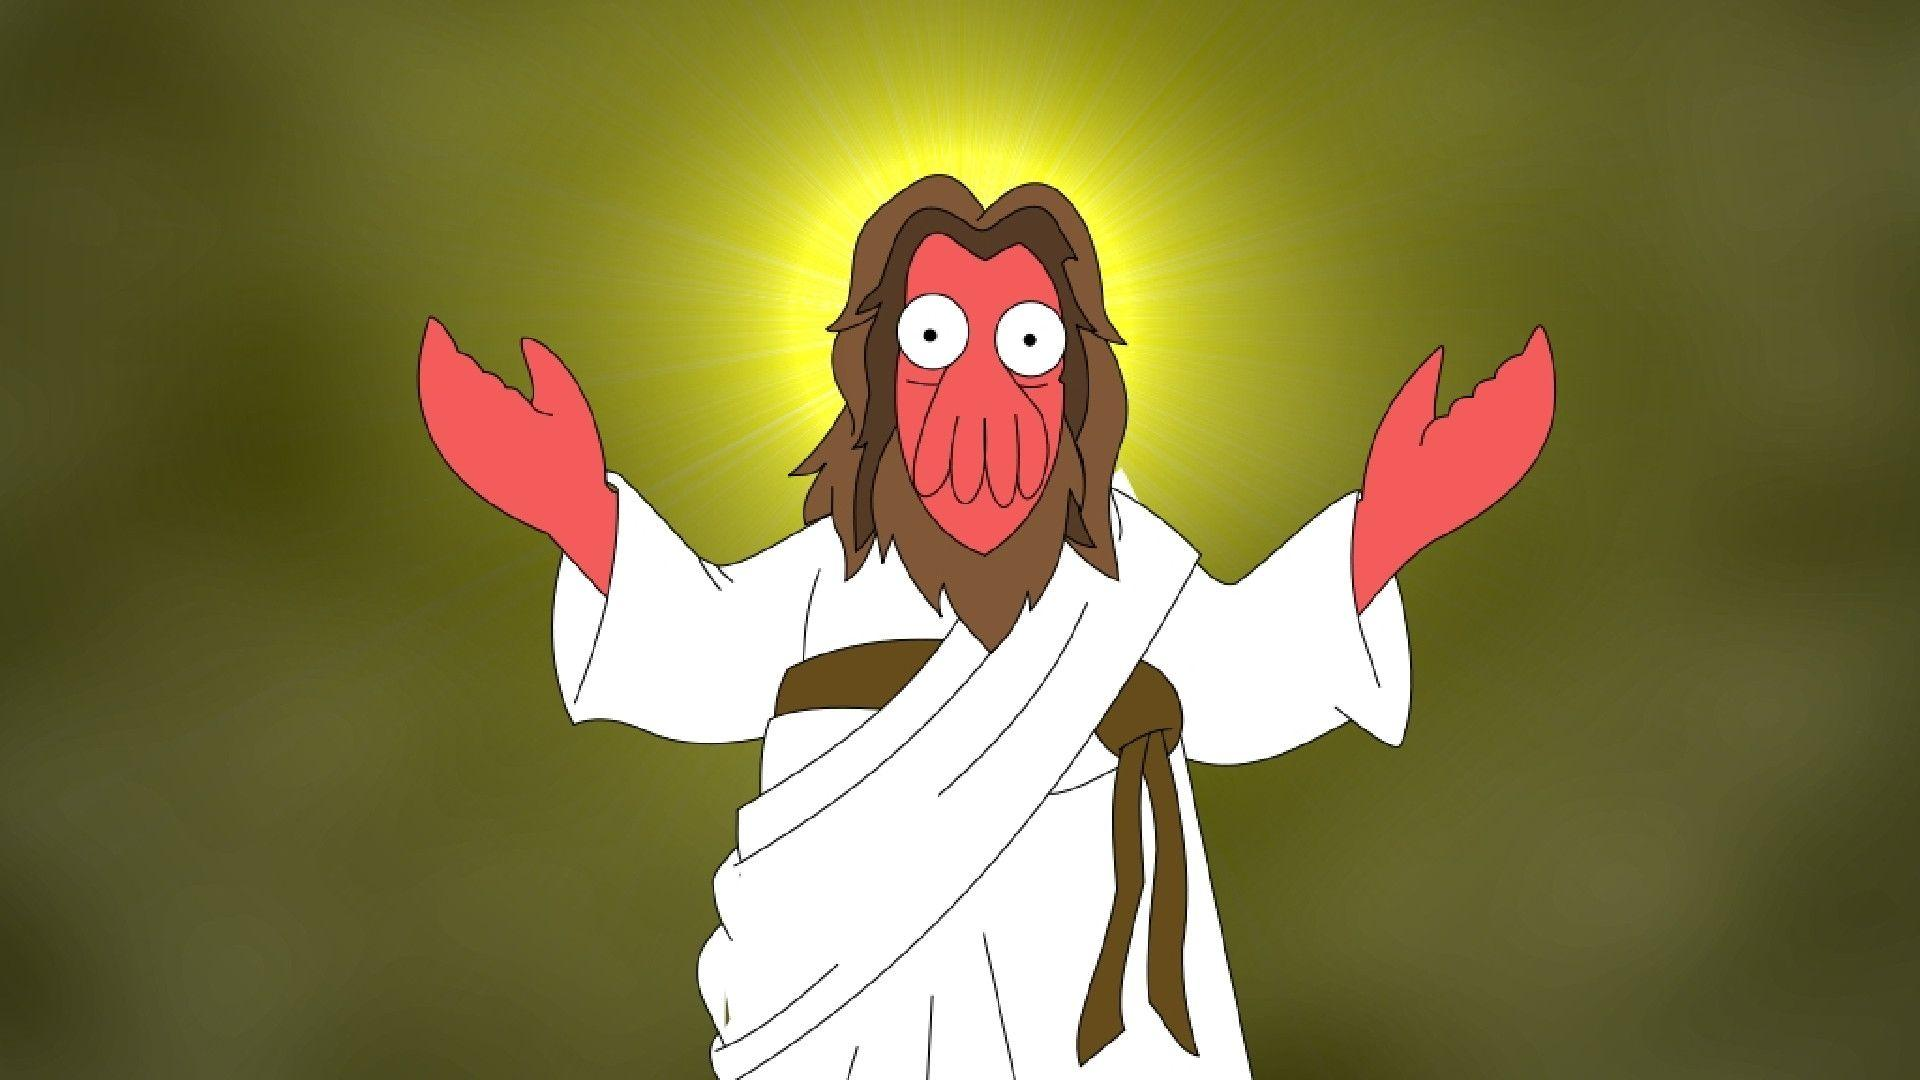 zoidberg wallpaper